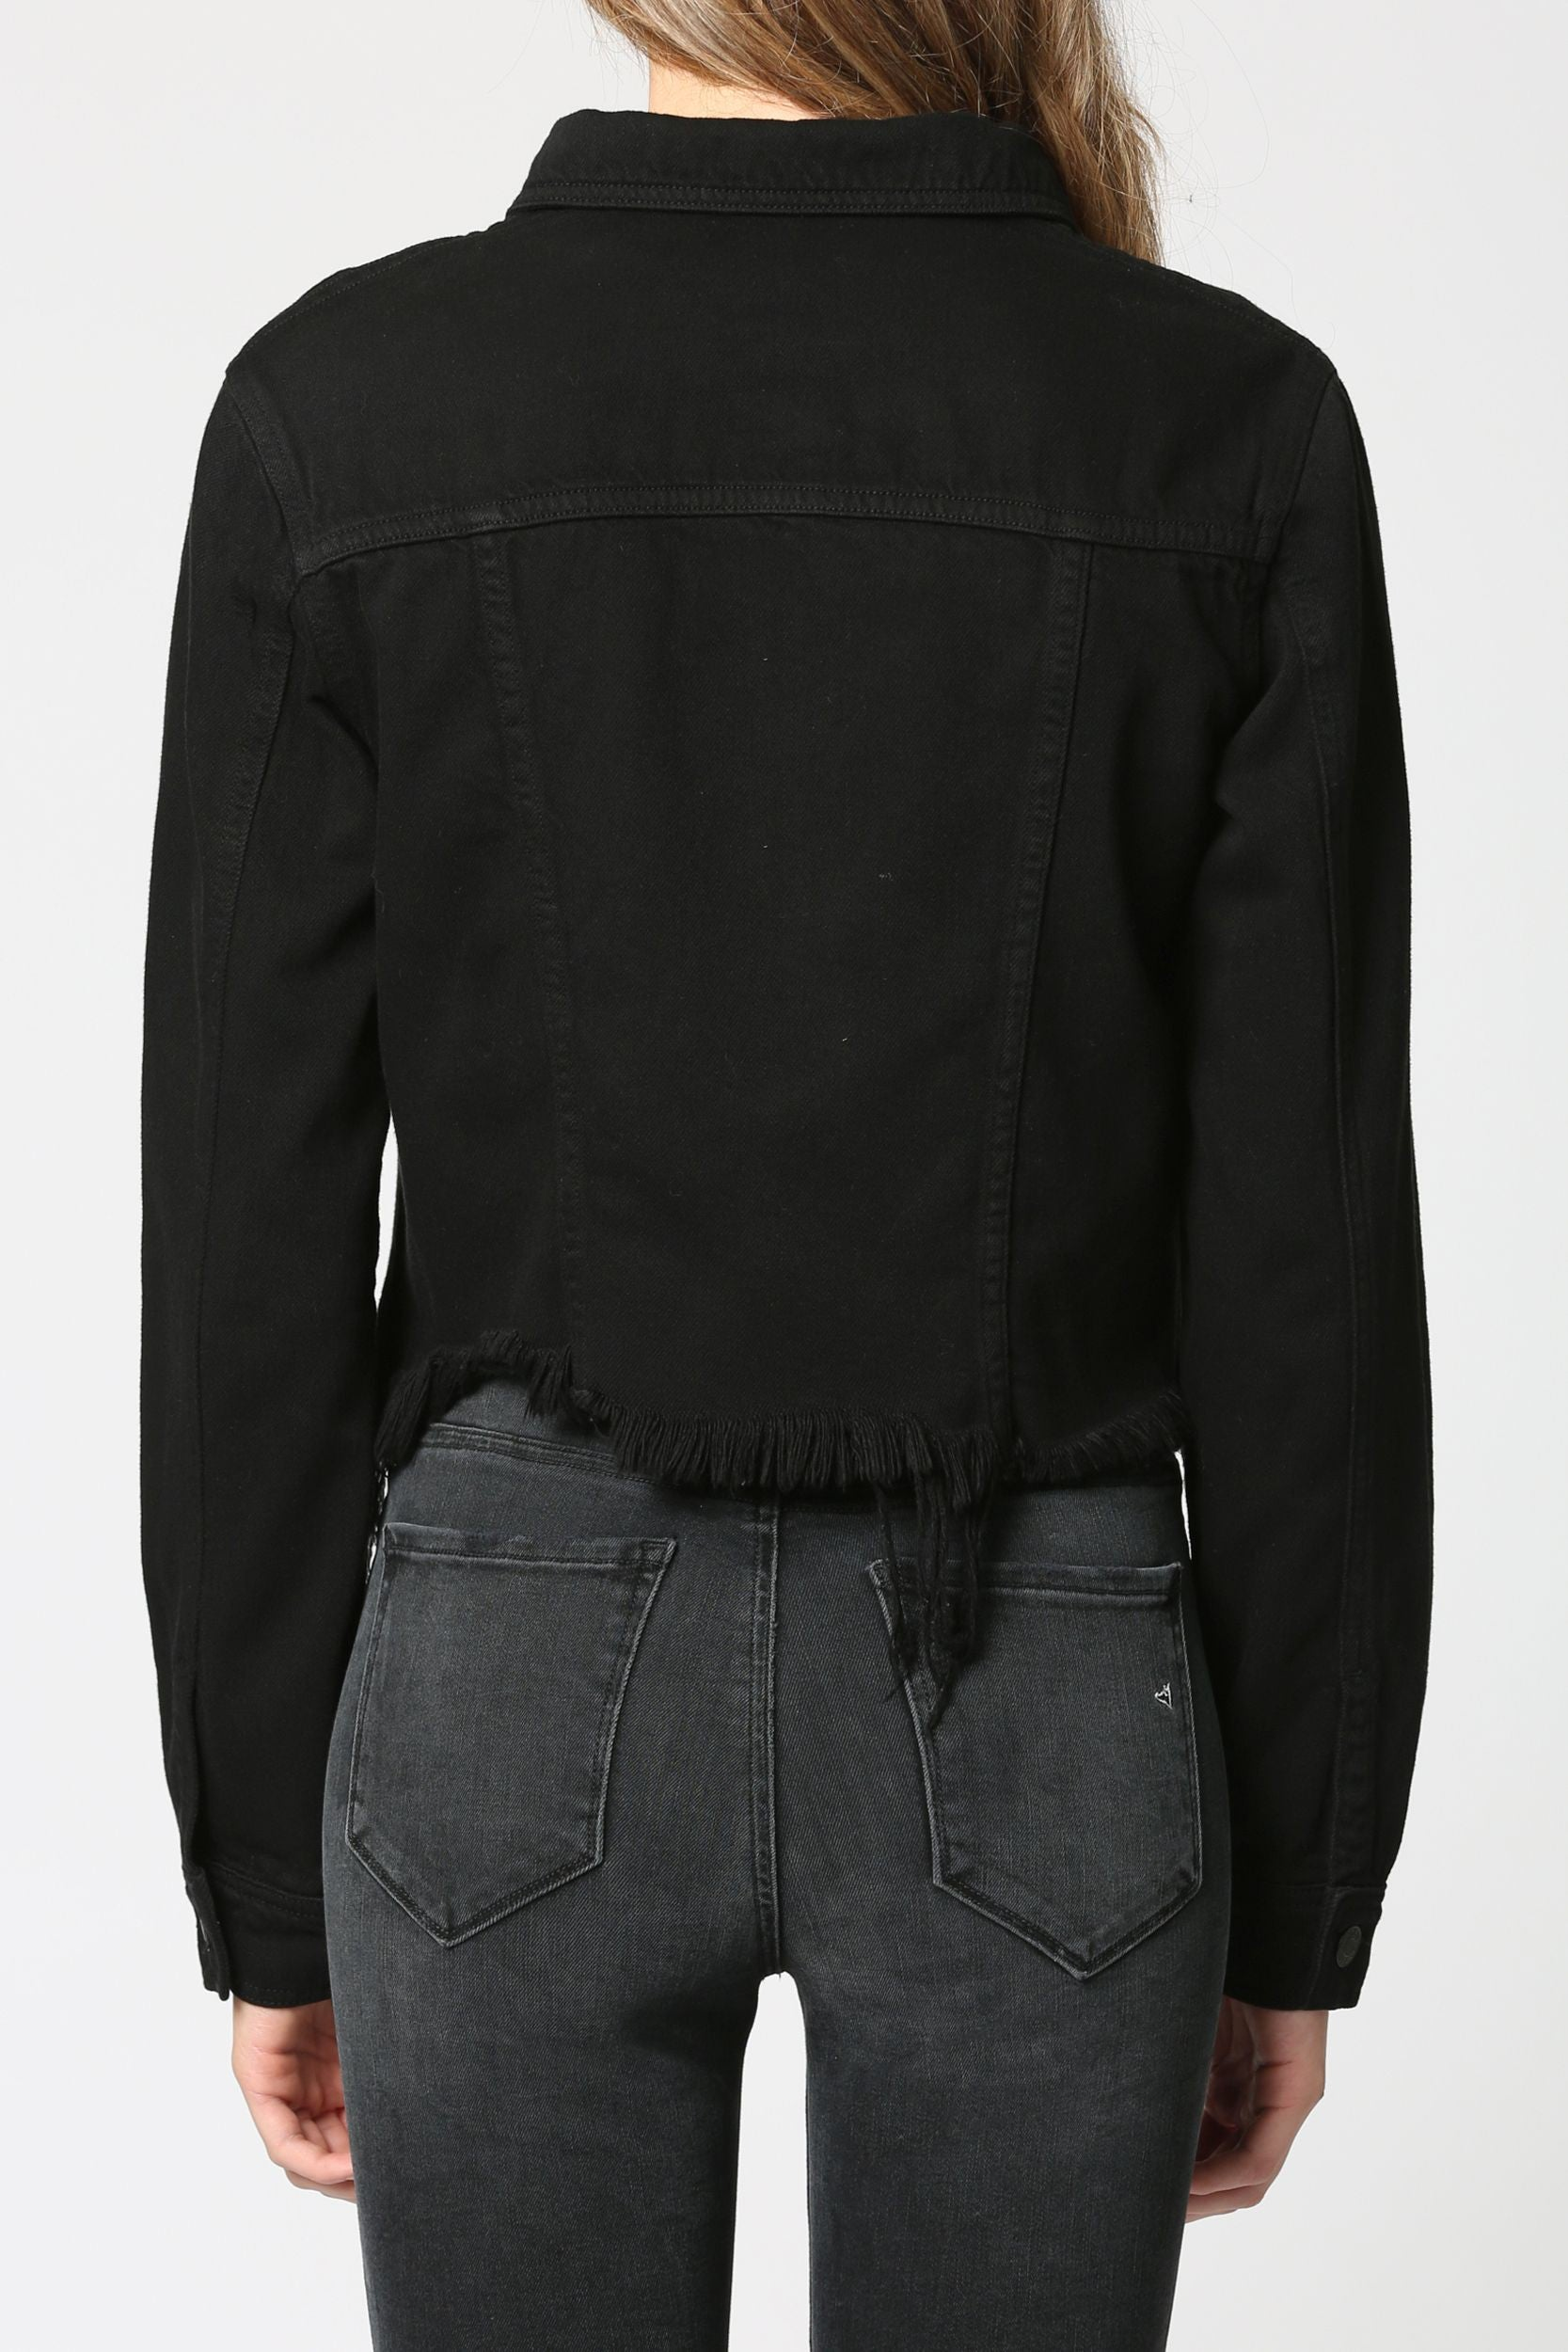 Hidden Cropped Fitted Jacket w/ Fray - Black